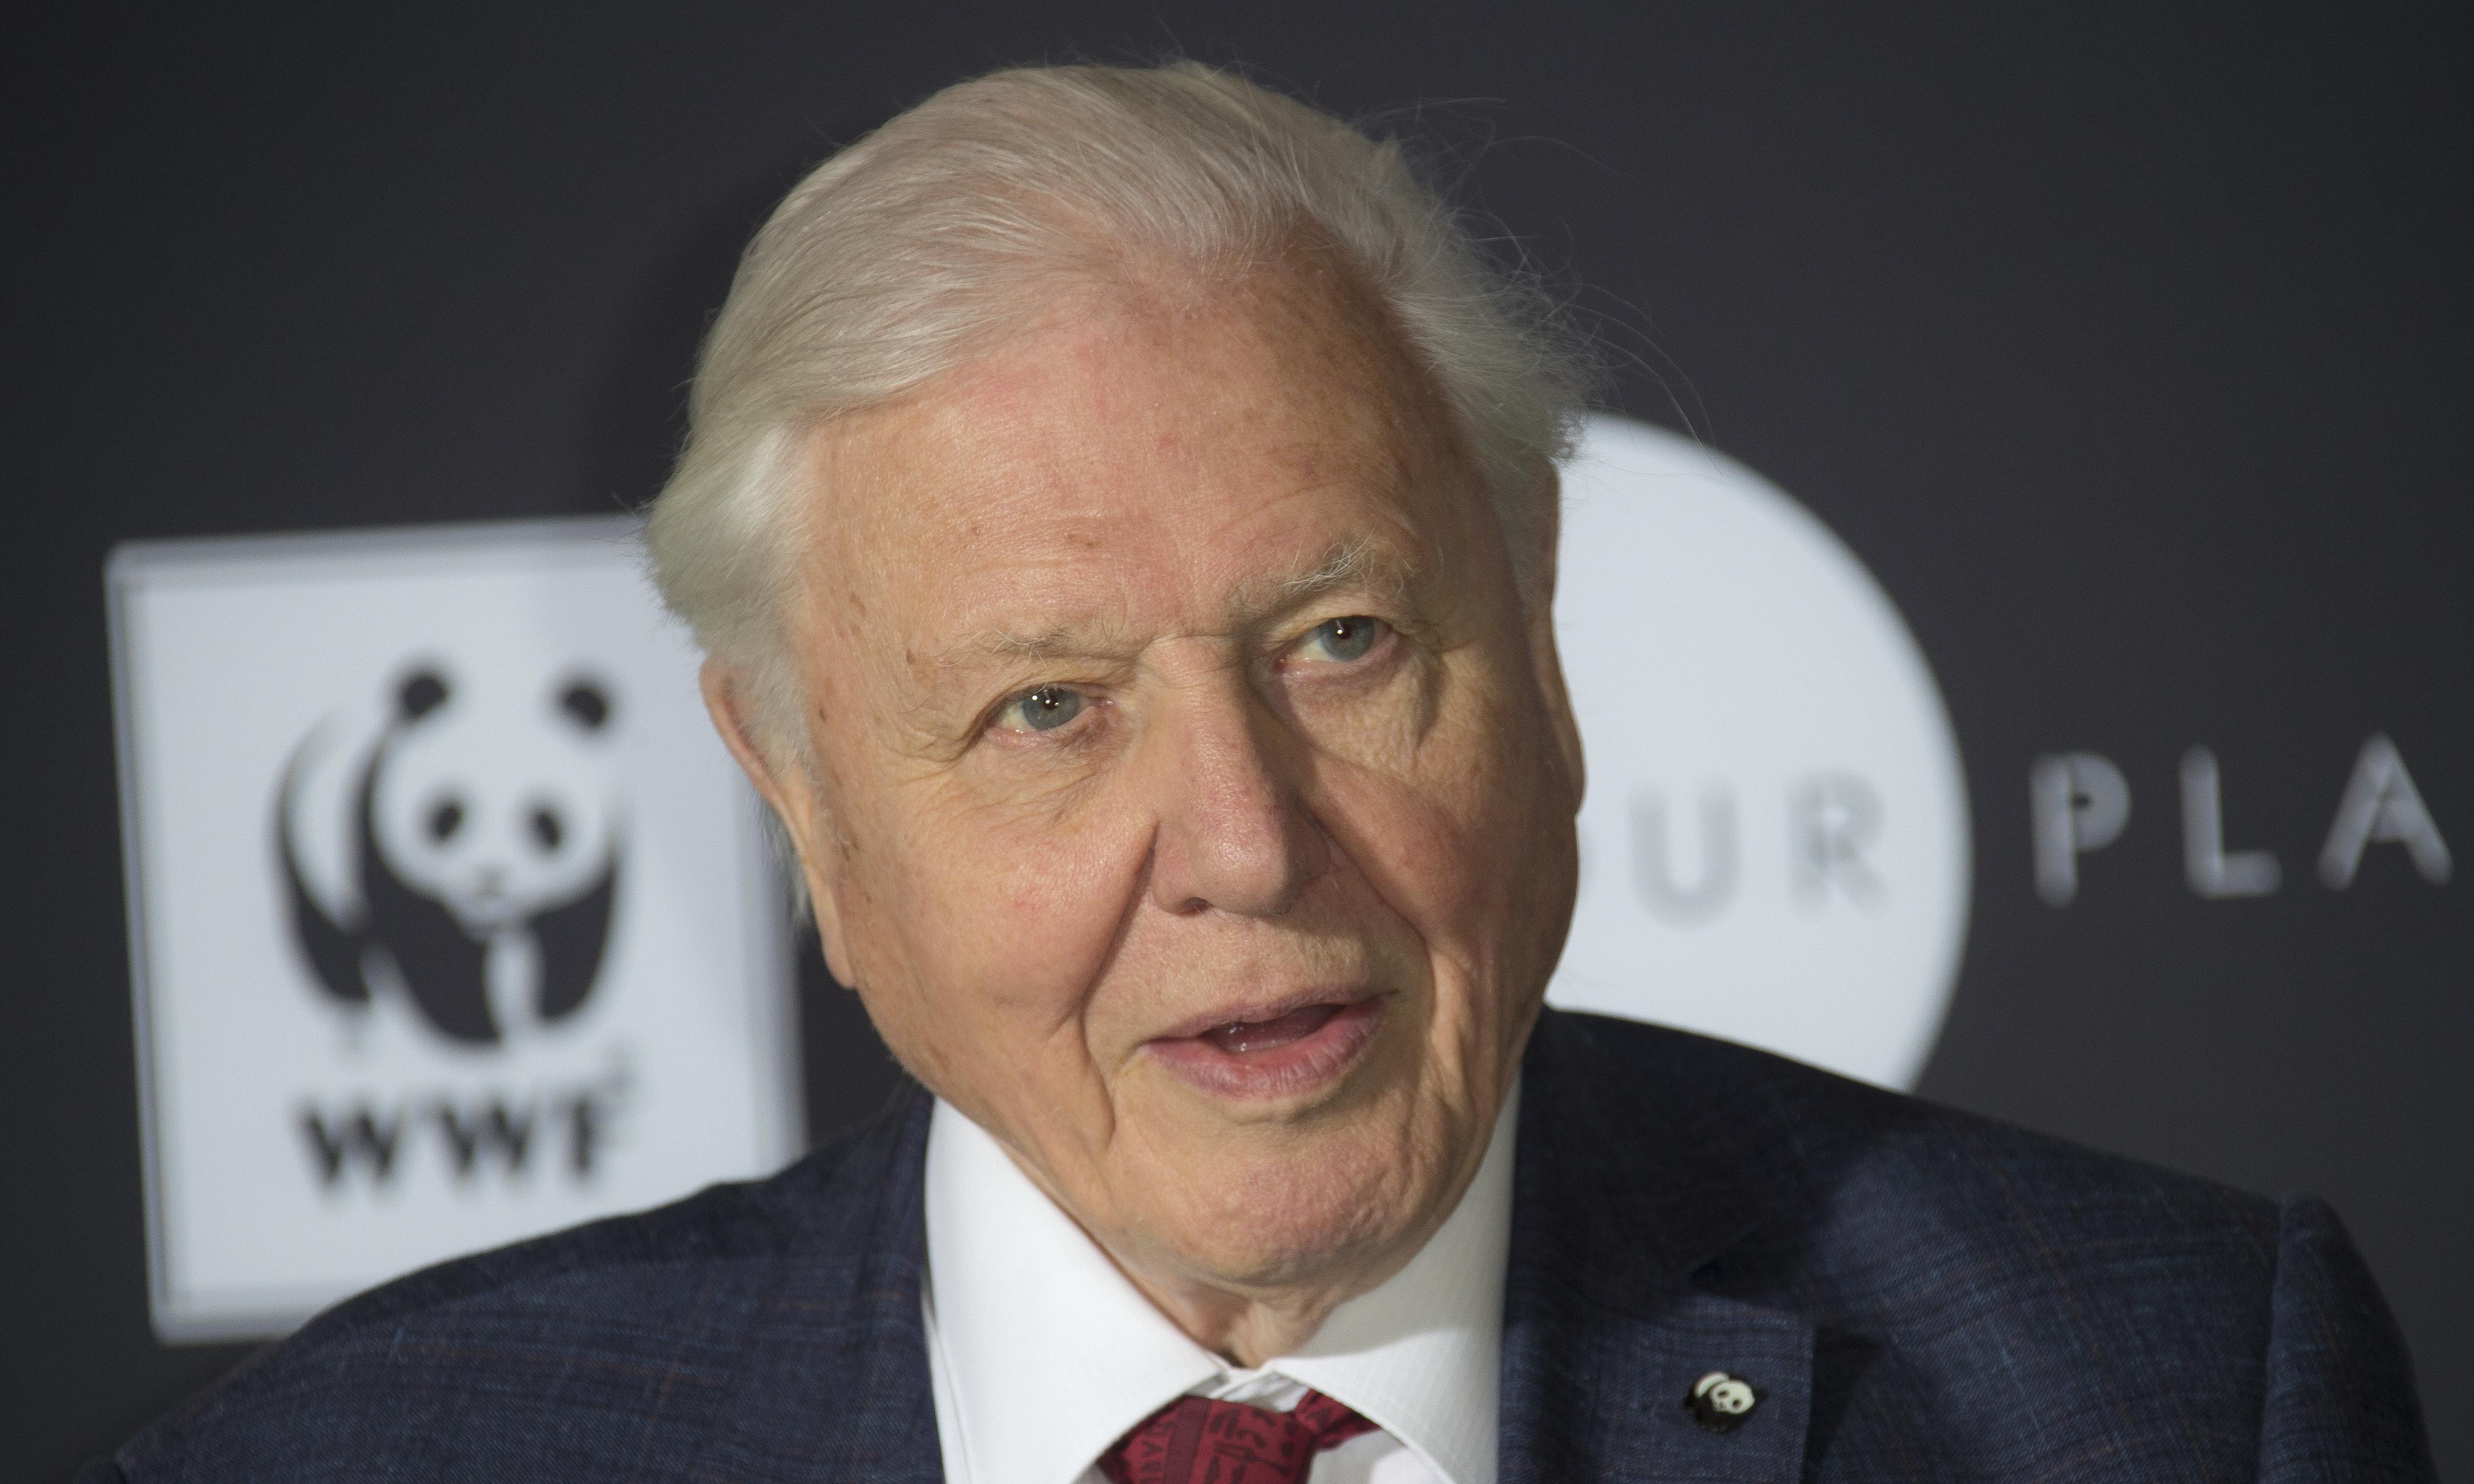 David Attenborough warns that humans have 'overrun the world'